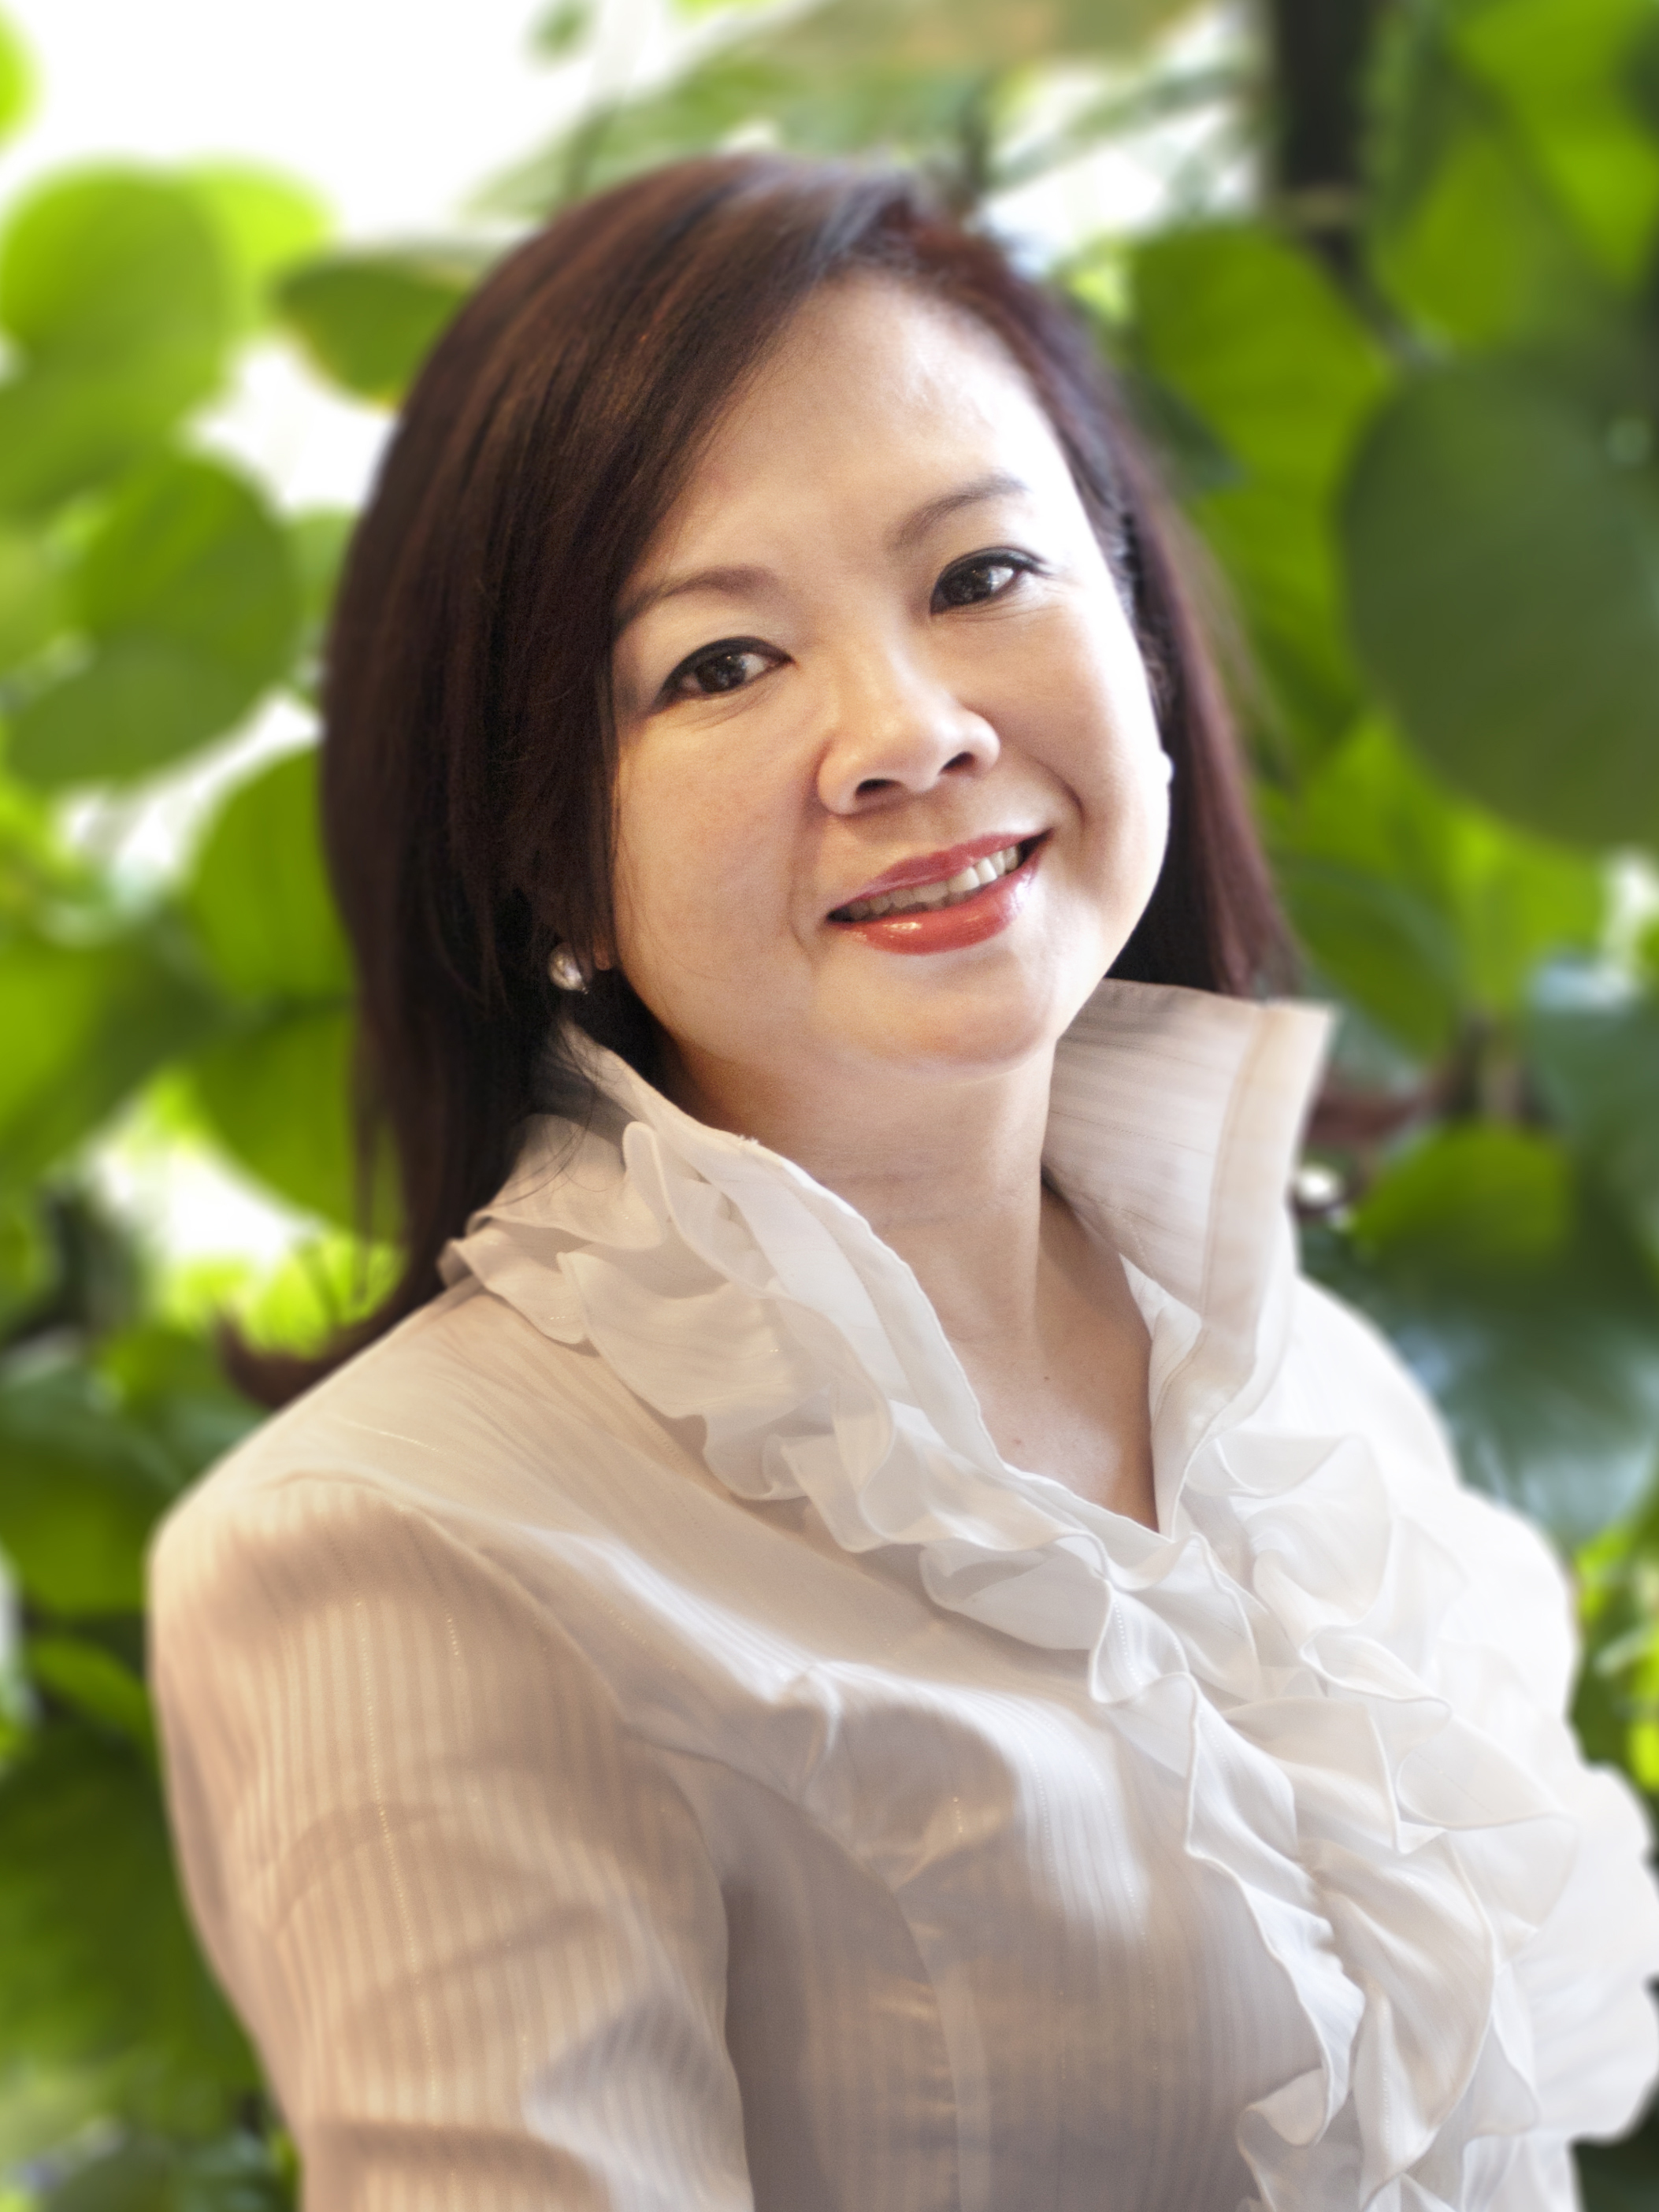 ESTHER AN - CHIEF SUSTAINABILITY OFFICERCity Developments Ltd (CDL)A pioneer CSR practitioner for over 20 years, Esther is instrumental in building up CDL's sustainability leadership.     CDL is the first and only Singapore company listed on the Global 100 Most Sustainable Corporations in the World for 8 consecutive years and is currently ranked top real estate company.It is also the first to be included in leading global sustainability benchmarks such as the FTSE4Good Index Series since 2002, MSCI ESG Research (AAA rating) since 2009 and Dow Jones Sustainability Indexes since 2011.Furthering its position as a sustainability leader, CDL successfully issued a green bond in April 2017, the first in Singapore by a local company.A committee member of the Global Compact Network Singapore, which is the local network of UN Global Compact for CSR, Esther is a member of the World Green Building Council's Corporate Advisory Board and the Urban Land Institute Women's Leadership Initiative Singapore Steering Committee. Her latest appointments include: member of the UNEP Finance Initiative Property Working Group, GRI Corporate Leadership Group for Integrated Reporting and Sustainable Stock Exchanges' Green Finance Advisory Group.